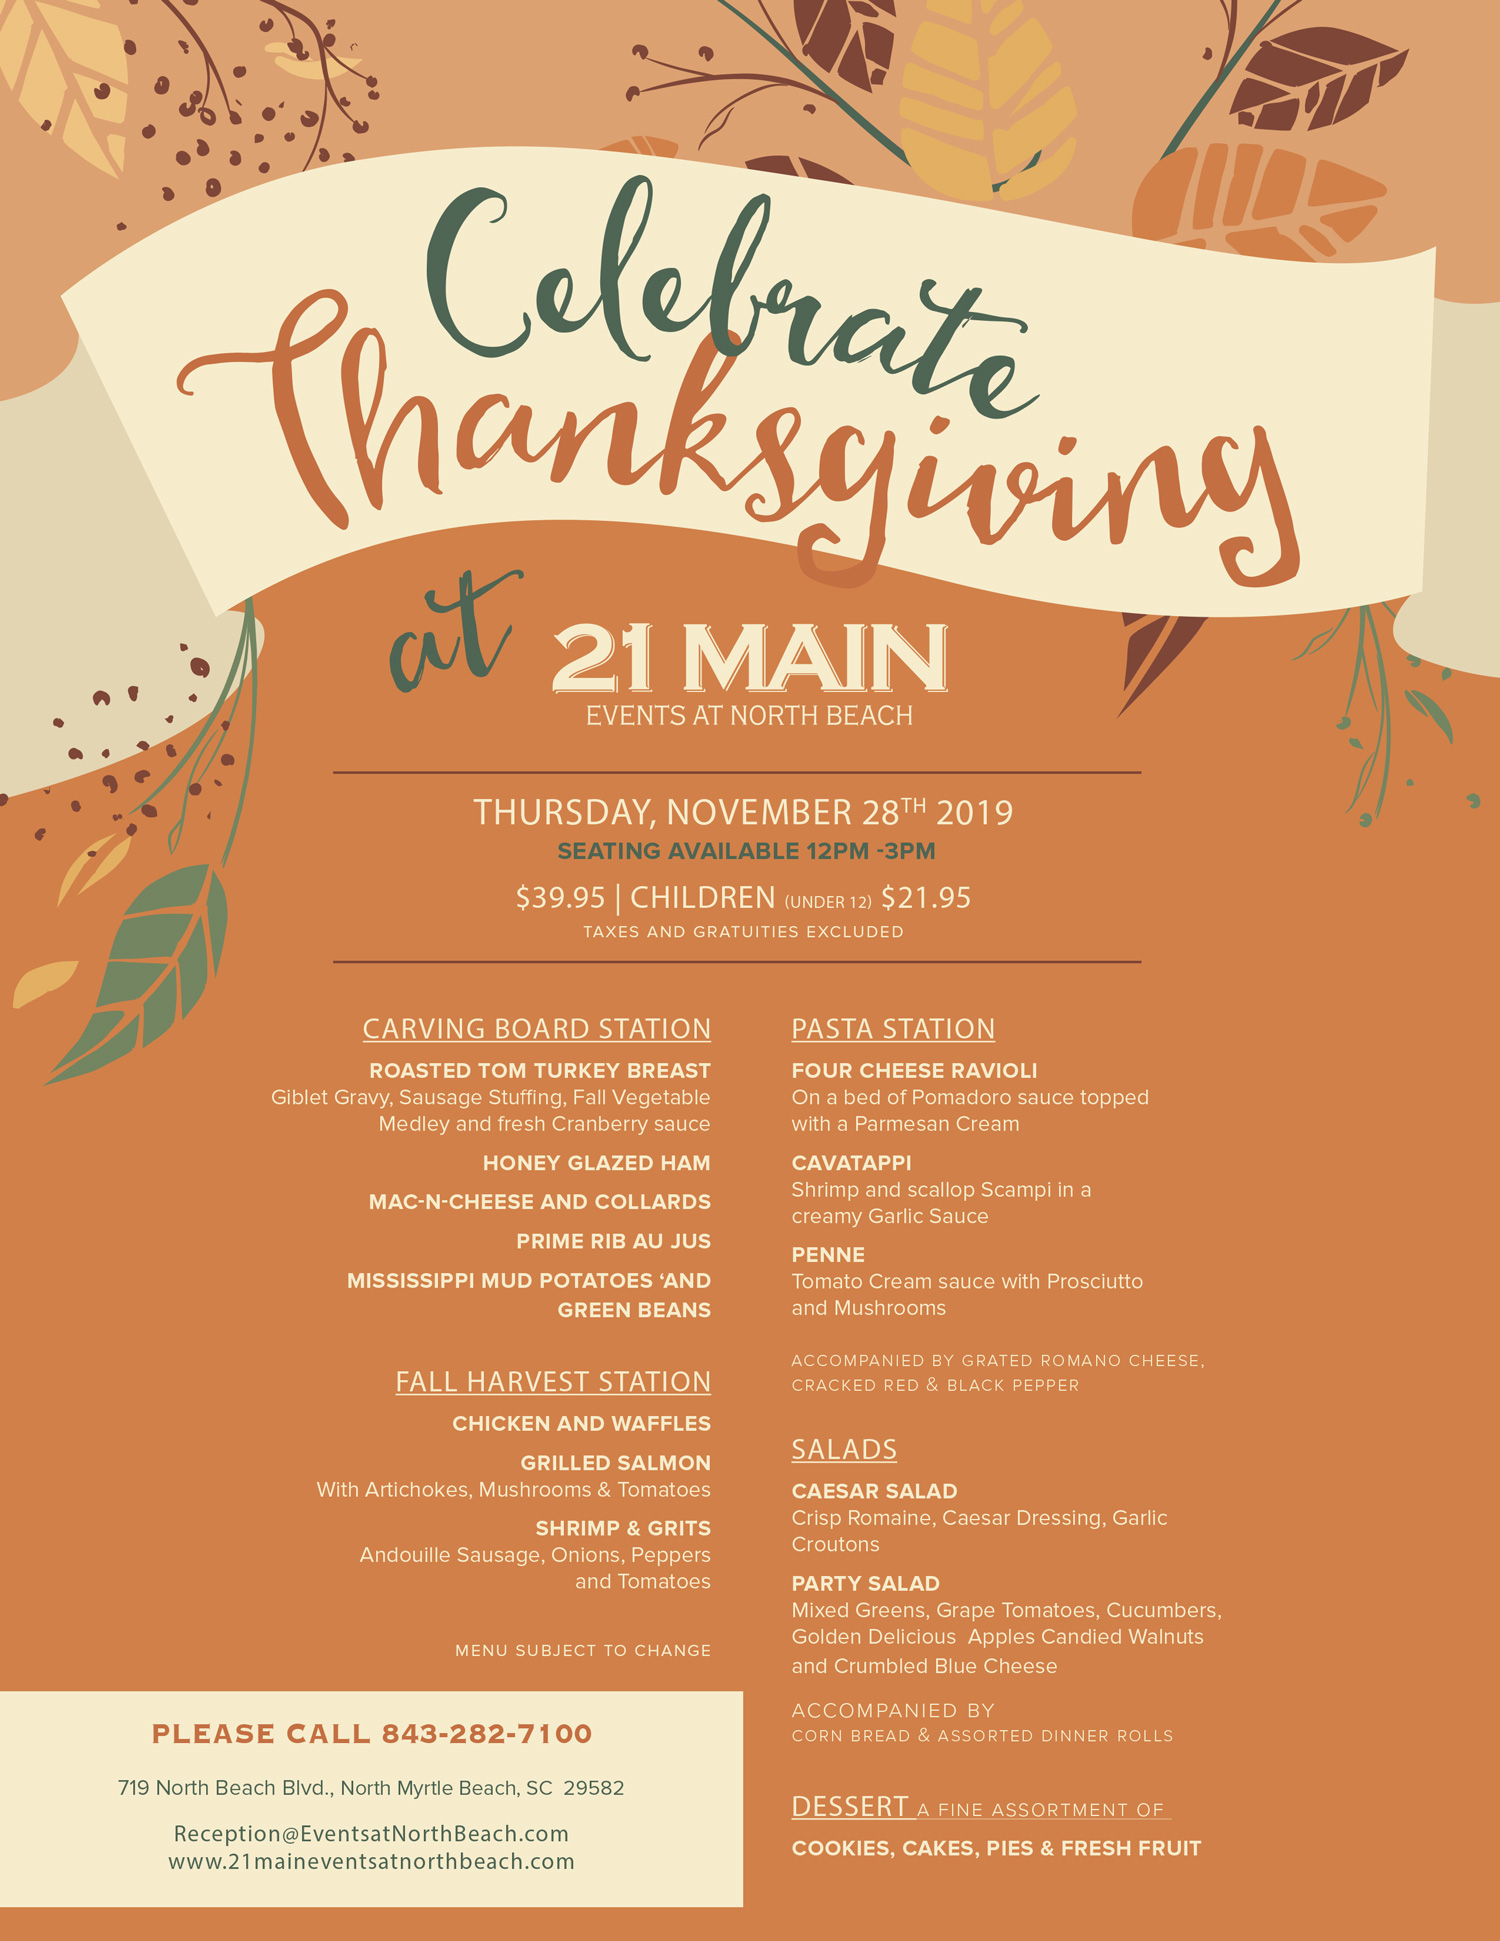 Thanksgiving menu at 21 Main Events in North Myrtle beach